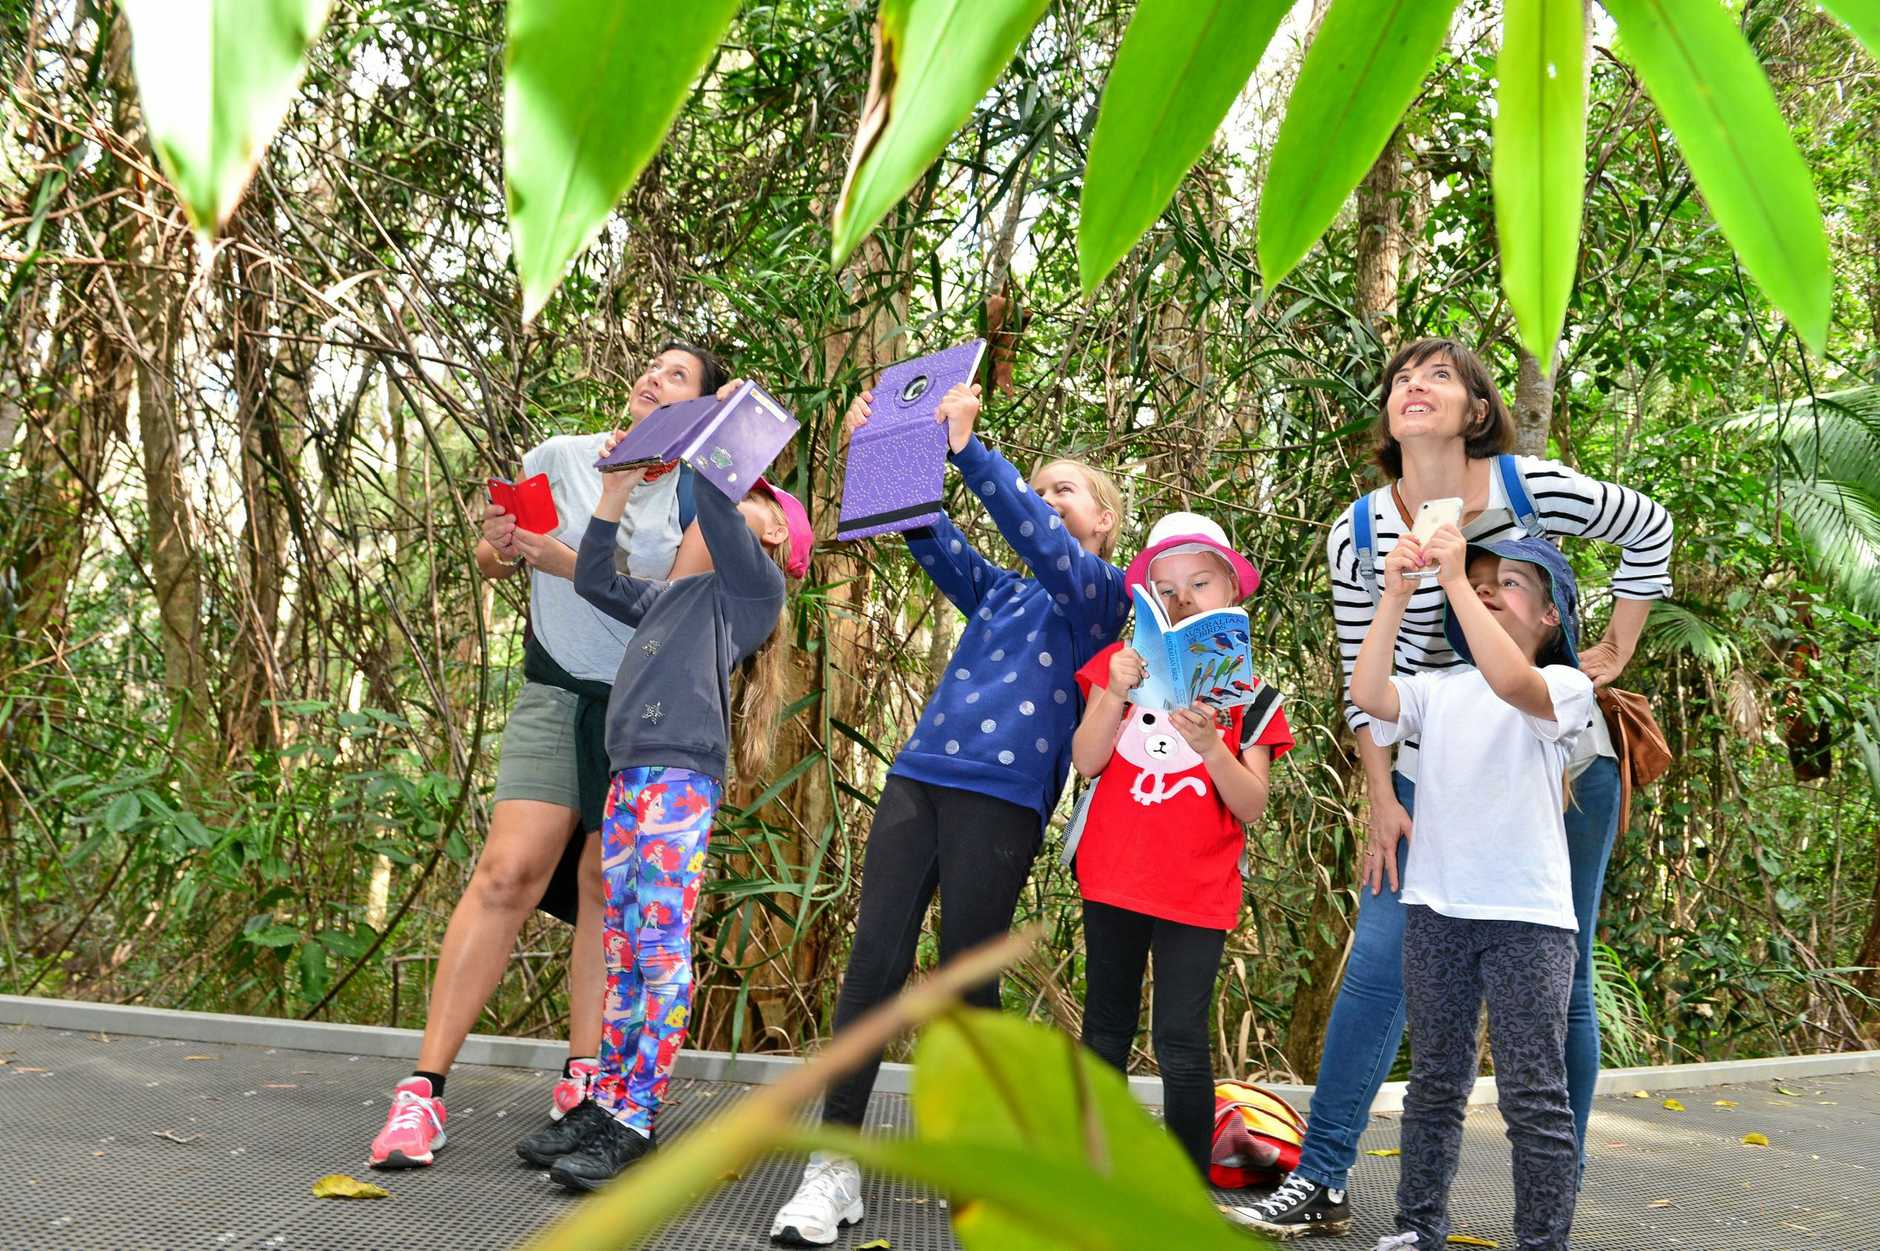 EDUCATIONAL ADVENTURE: Eugenia and Maddison Morris with Nina, Eliza, Natalie and Olive Dalton at Maroochy Wetlands Sanctuary using their apps to interact with the environment in the lead-up to the free Excox-Hunt Adventure these school holidays.